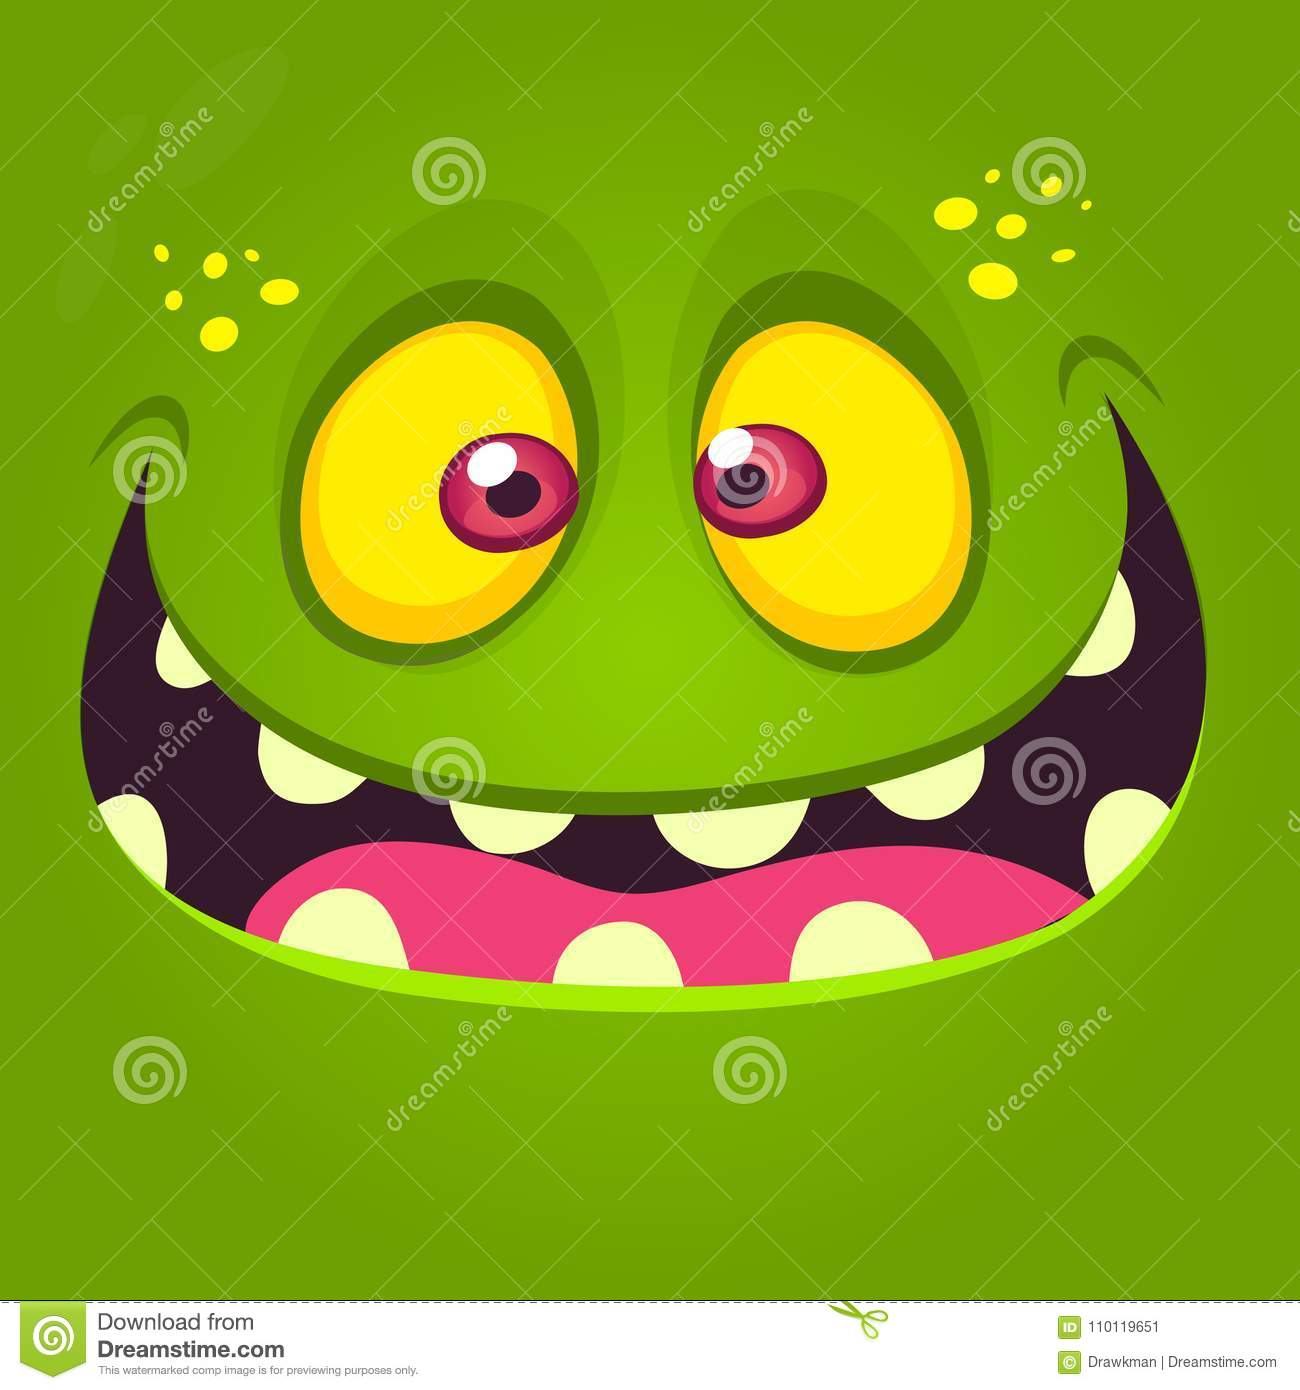 Happy cartoon monster face. Vector Halloween illustration of green excited monster or zombie